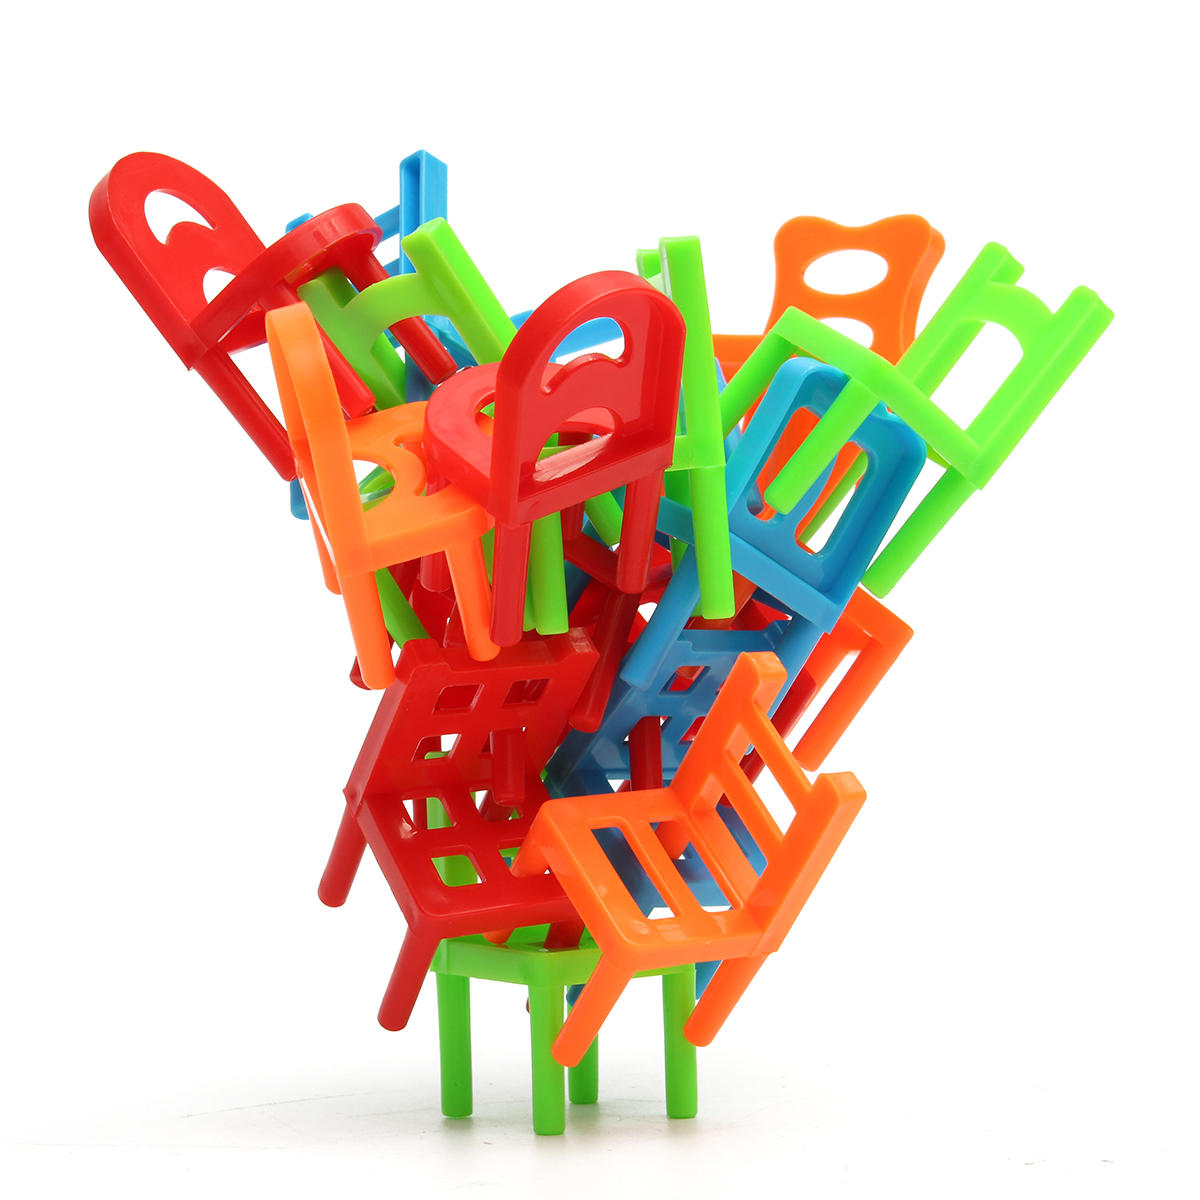 balance chair for kids covers wedding costs 18x plastic toy stacking chairs desk play game toys customer also viewed